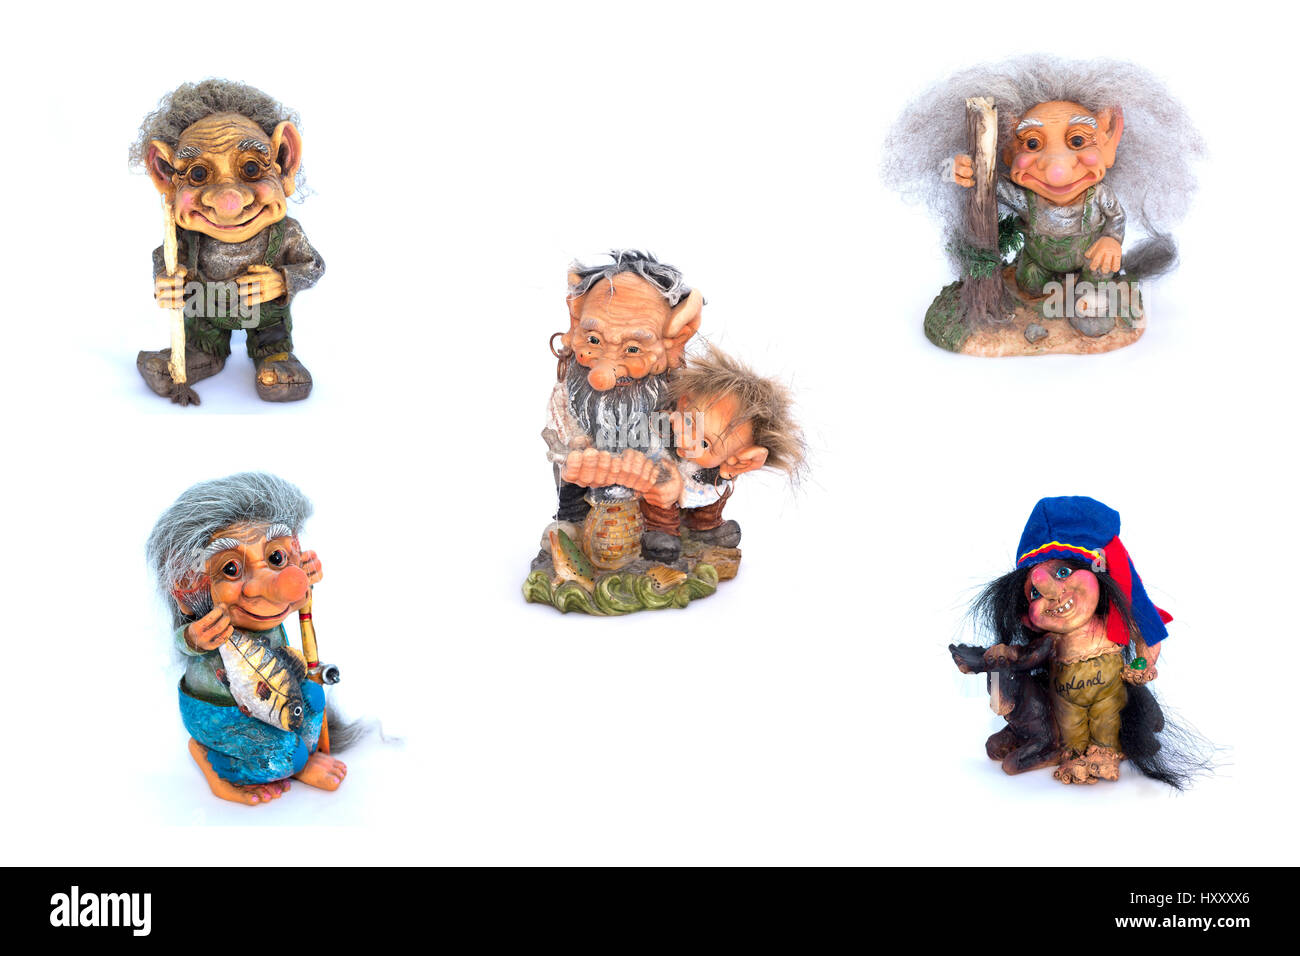 Troll Doll Stock Photos & Troll Doll Stock Images - Alamy